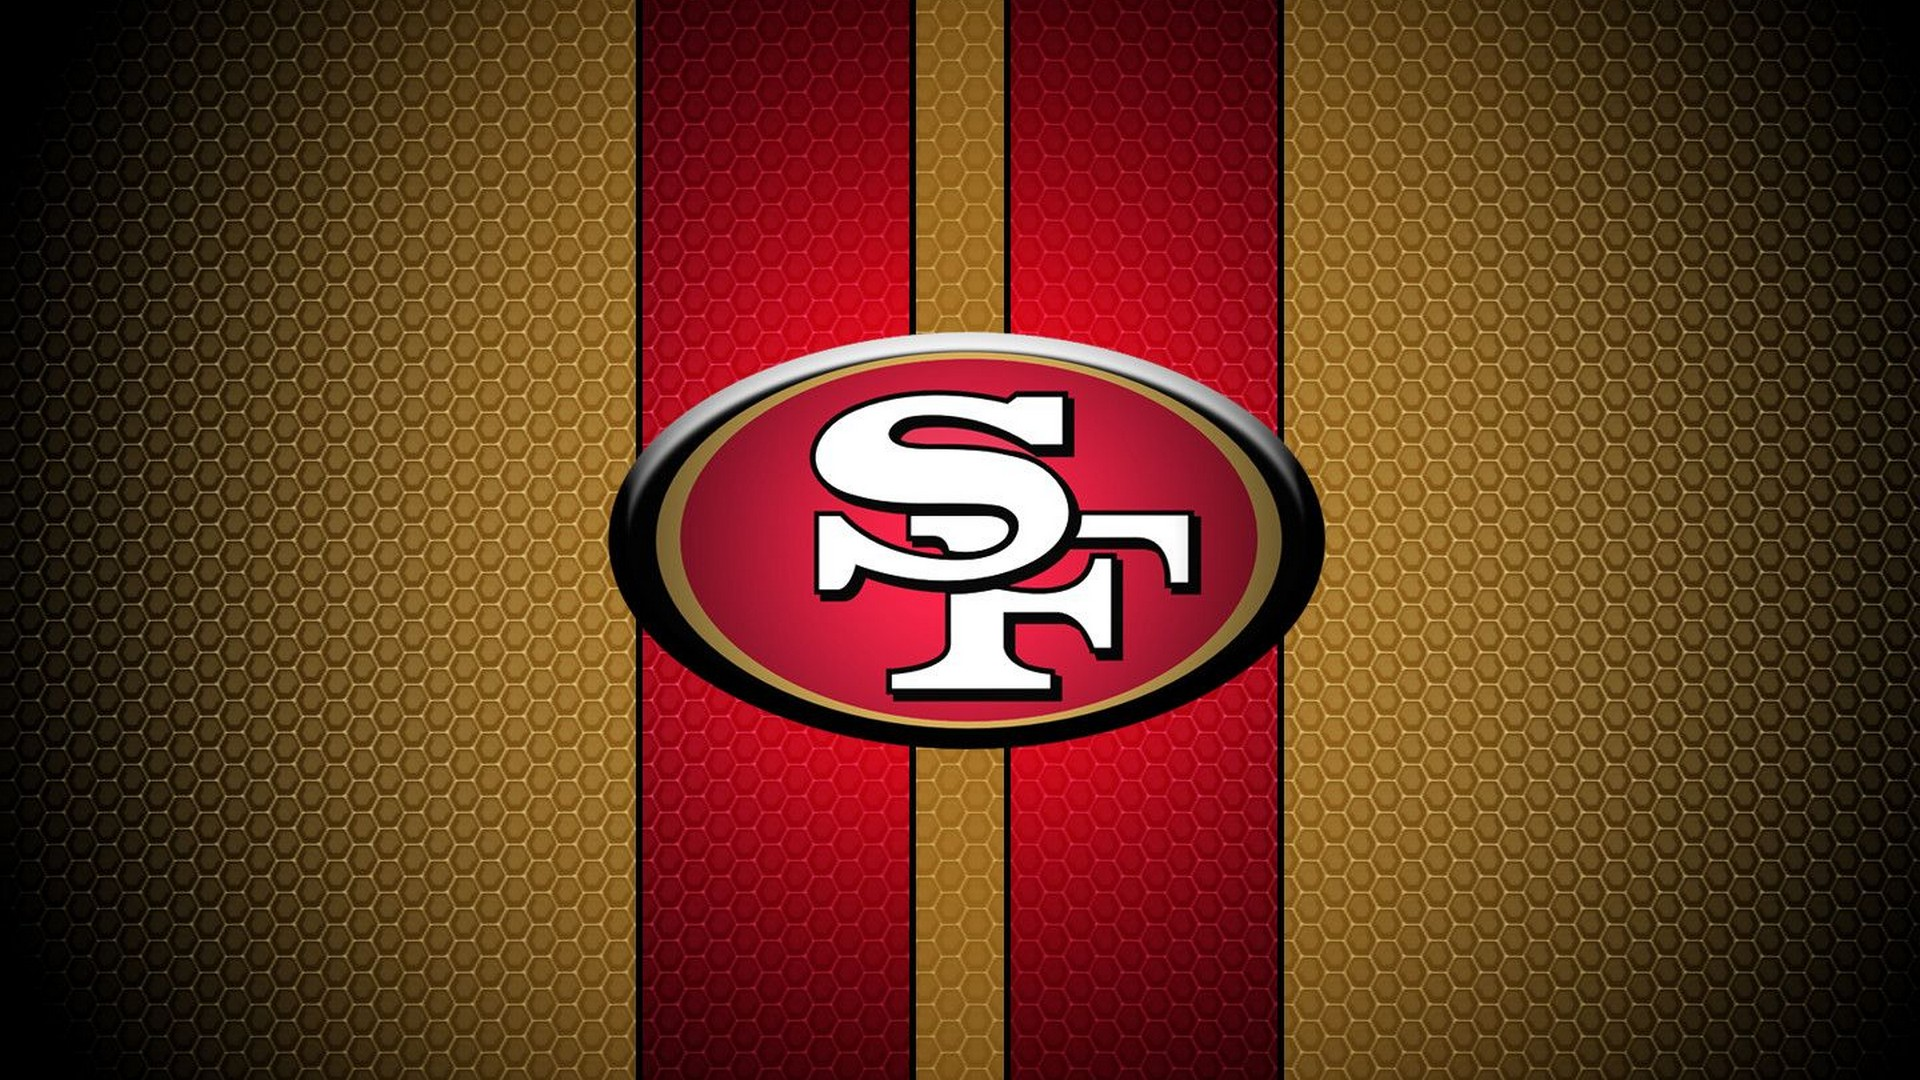 49ers Wallpaper – The Best background For Football Fans